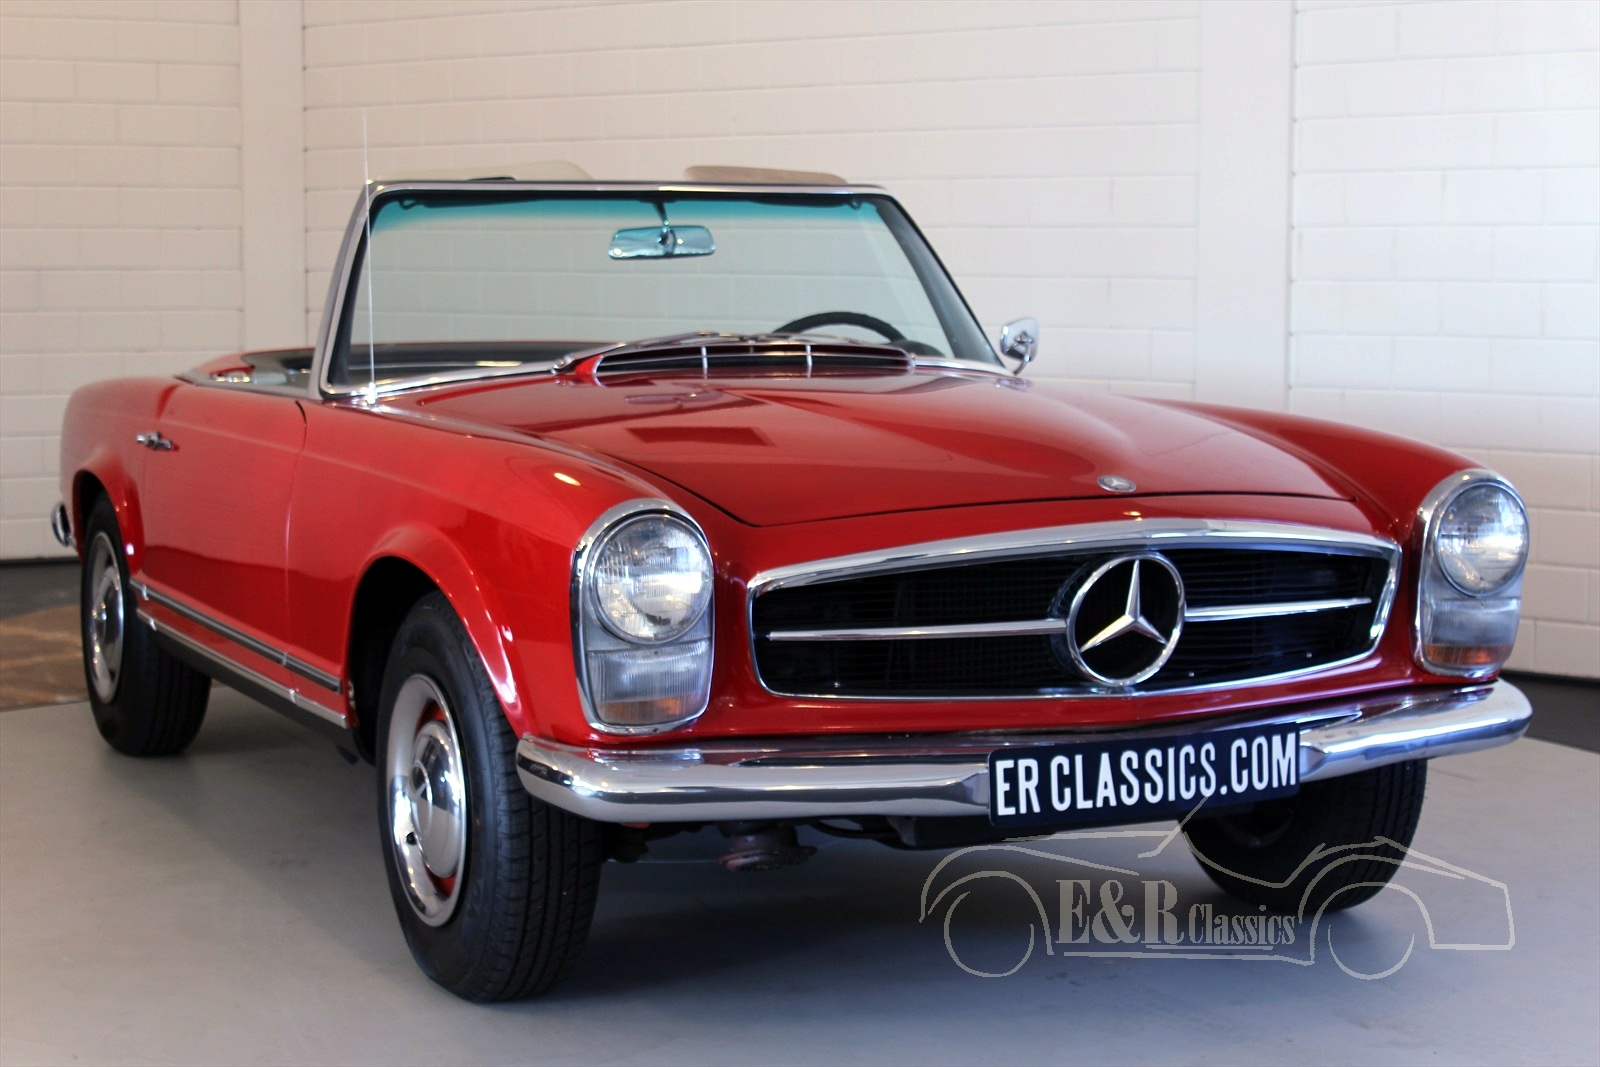 Classic Cars in Europe - Buy a European Classic Car